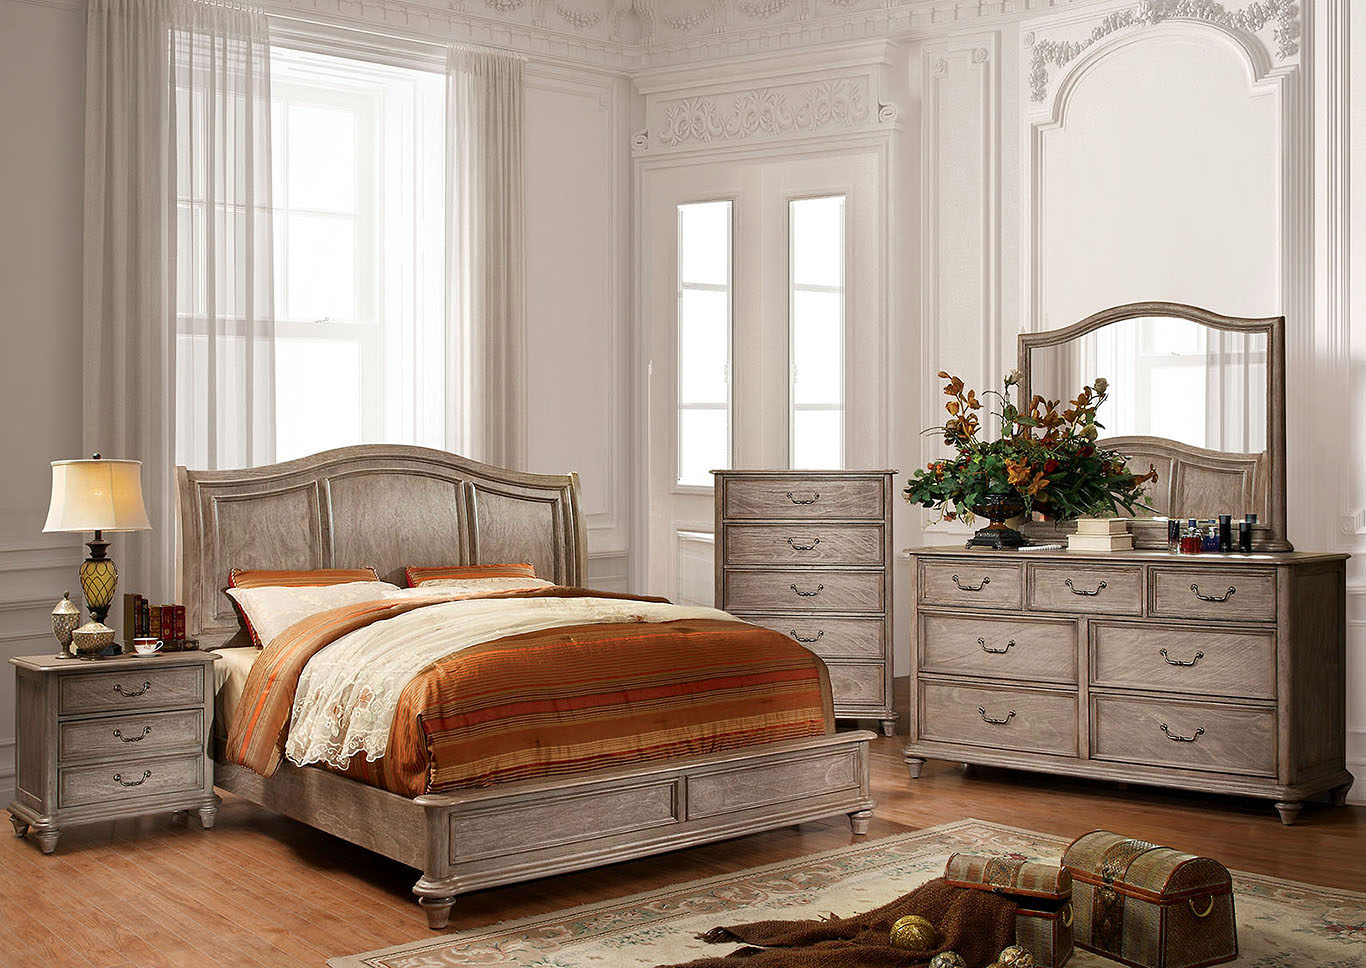 Belgrade II Rustic Natural Tone Queen Platform Bed w/Dresser, Mirror, Drawer Chest, and Nightstand,Furniture of America